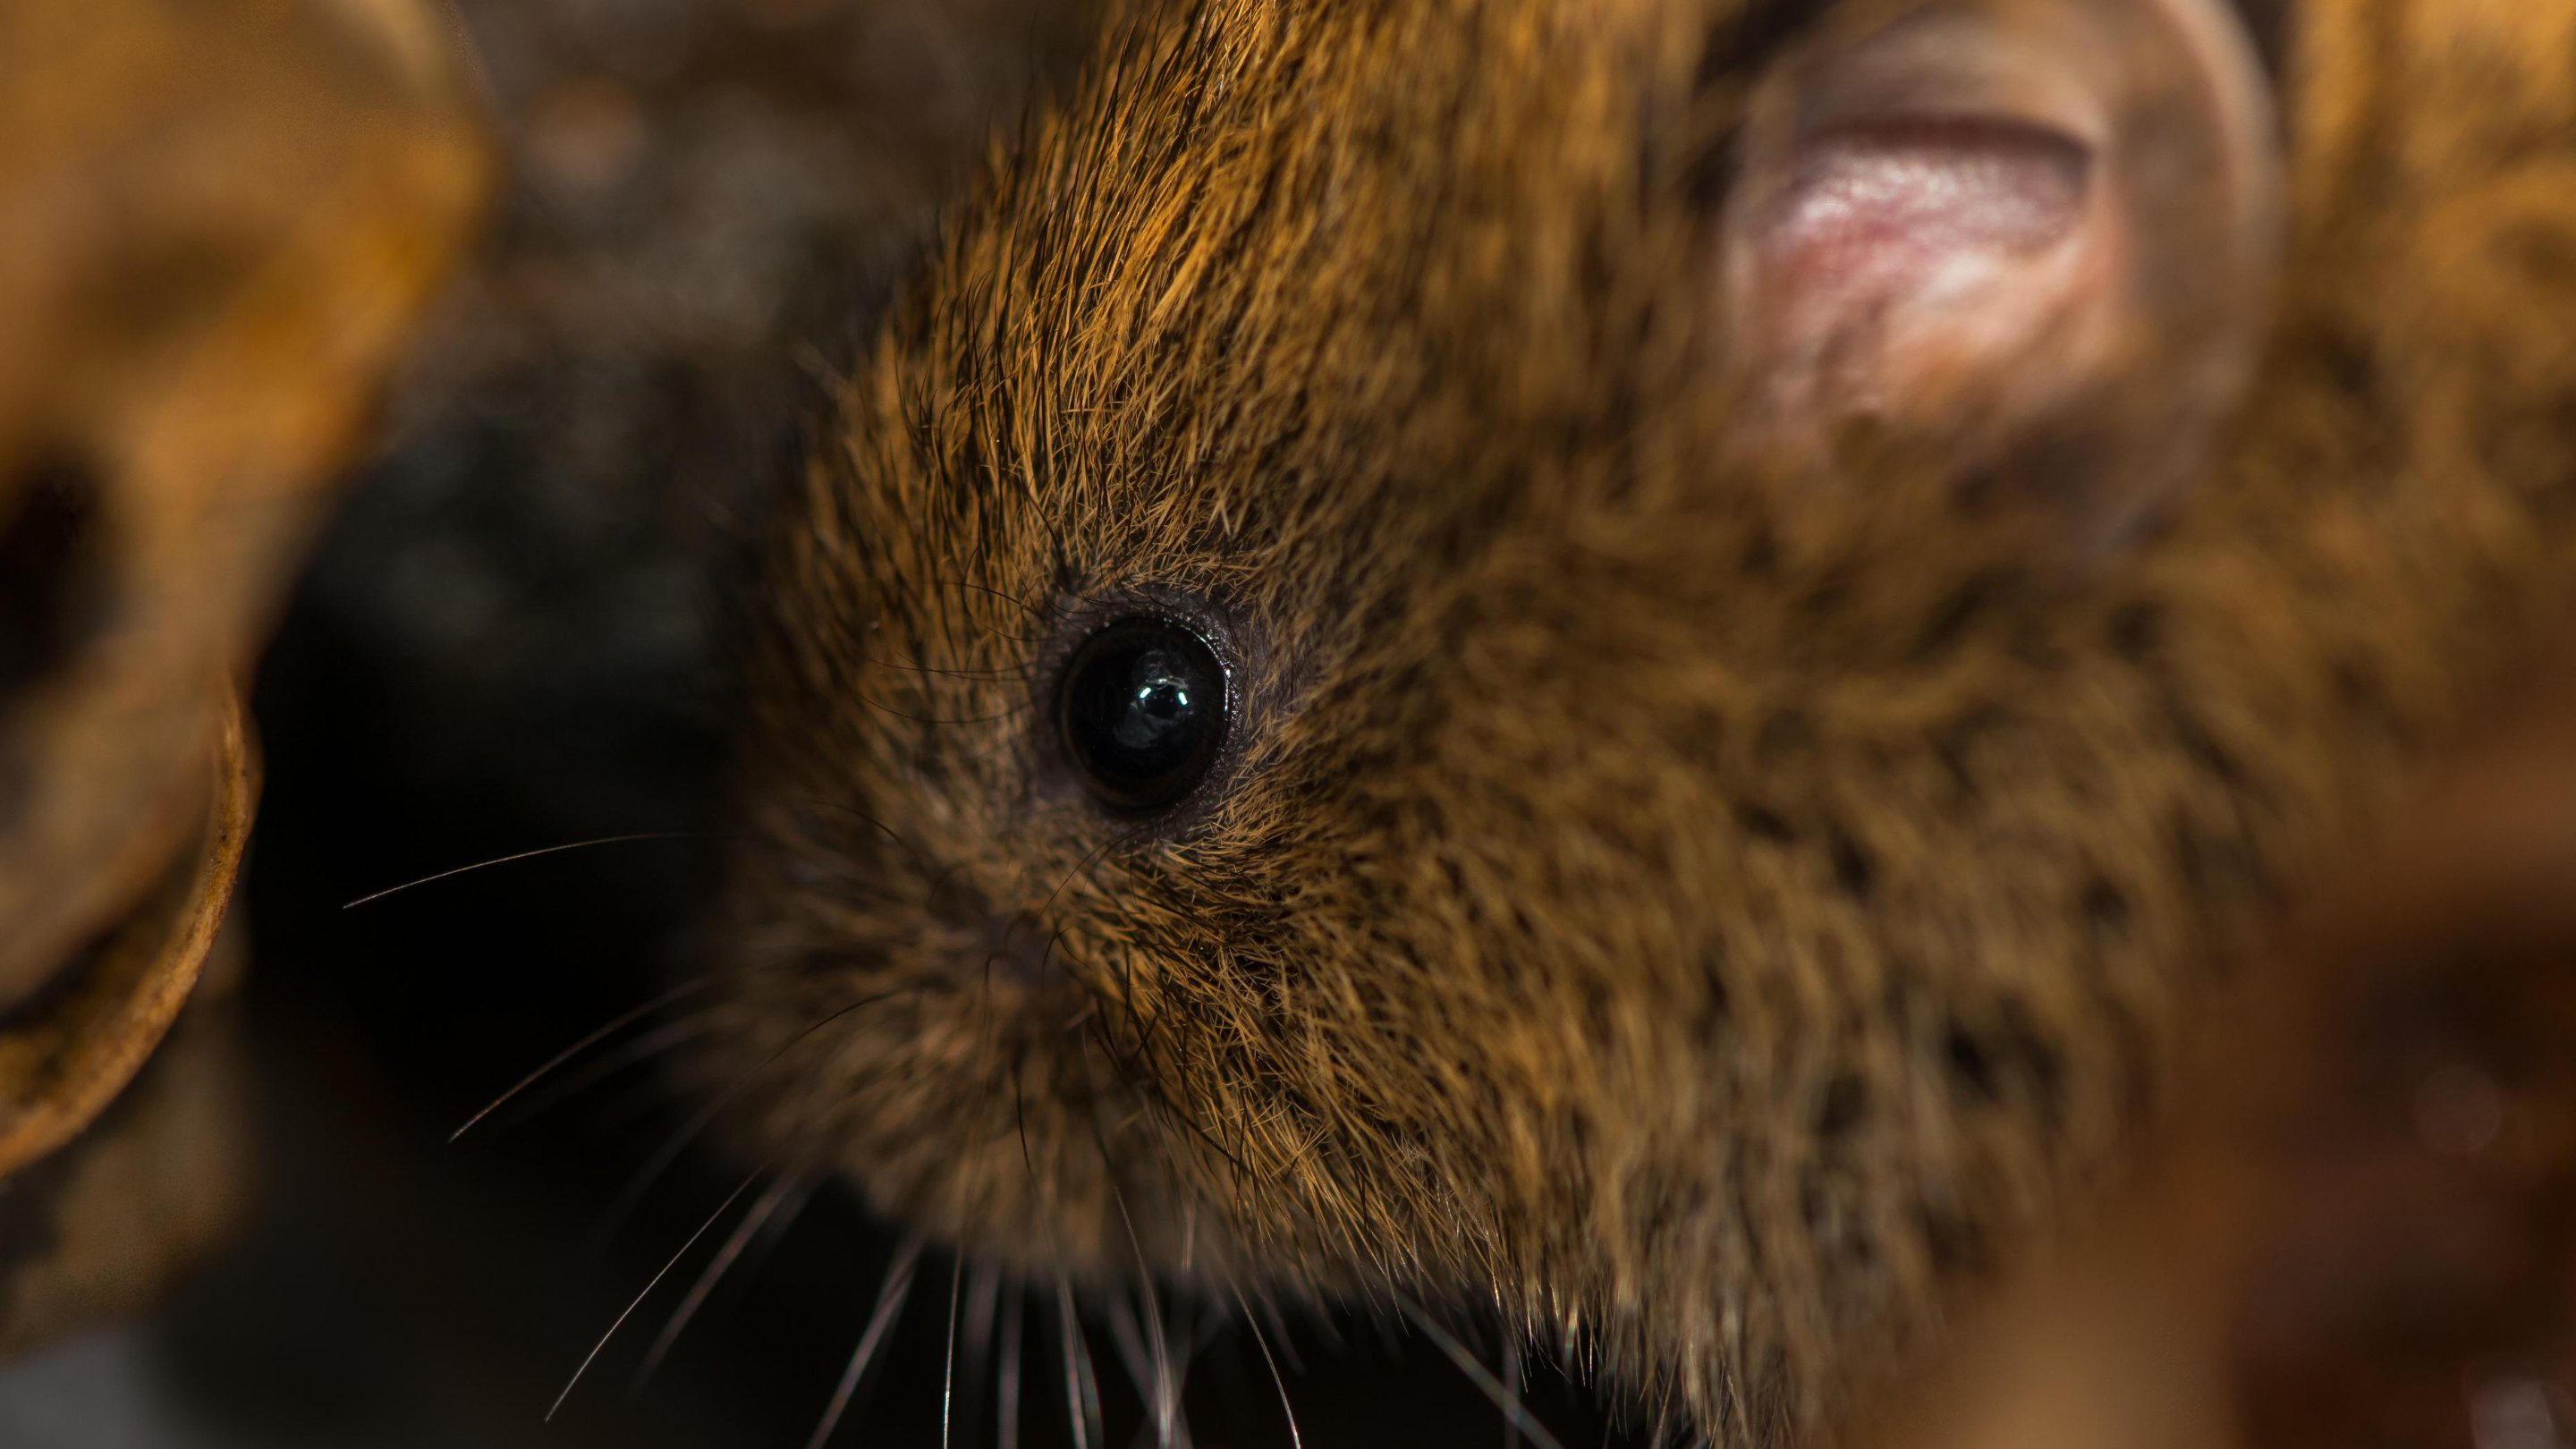 A small, brown vole cowers